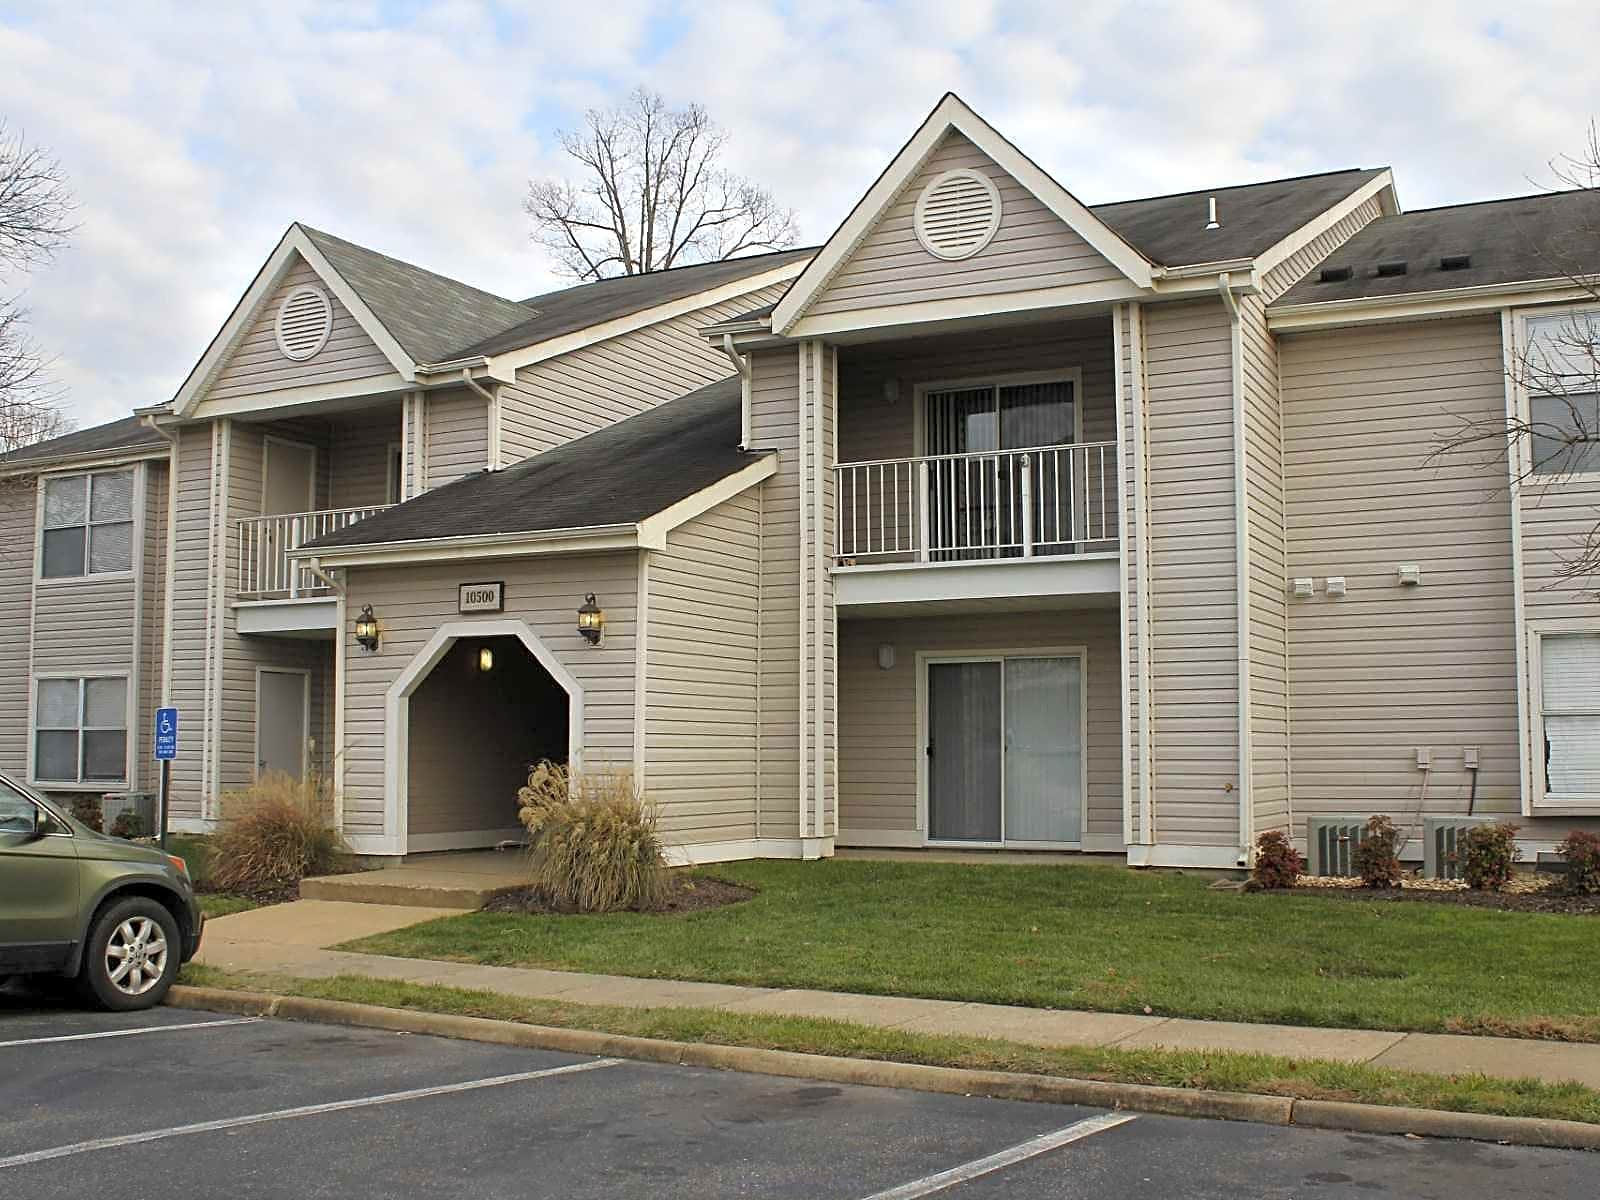 Photo: Fredericksburg Apartment for Rent - $922.00 / month; 1 Bd & 1 Ba